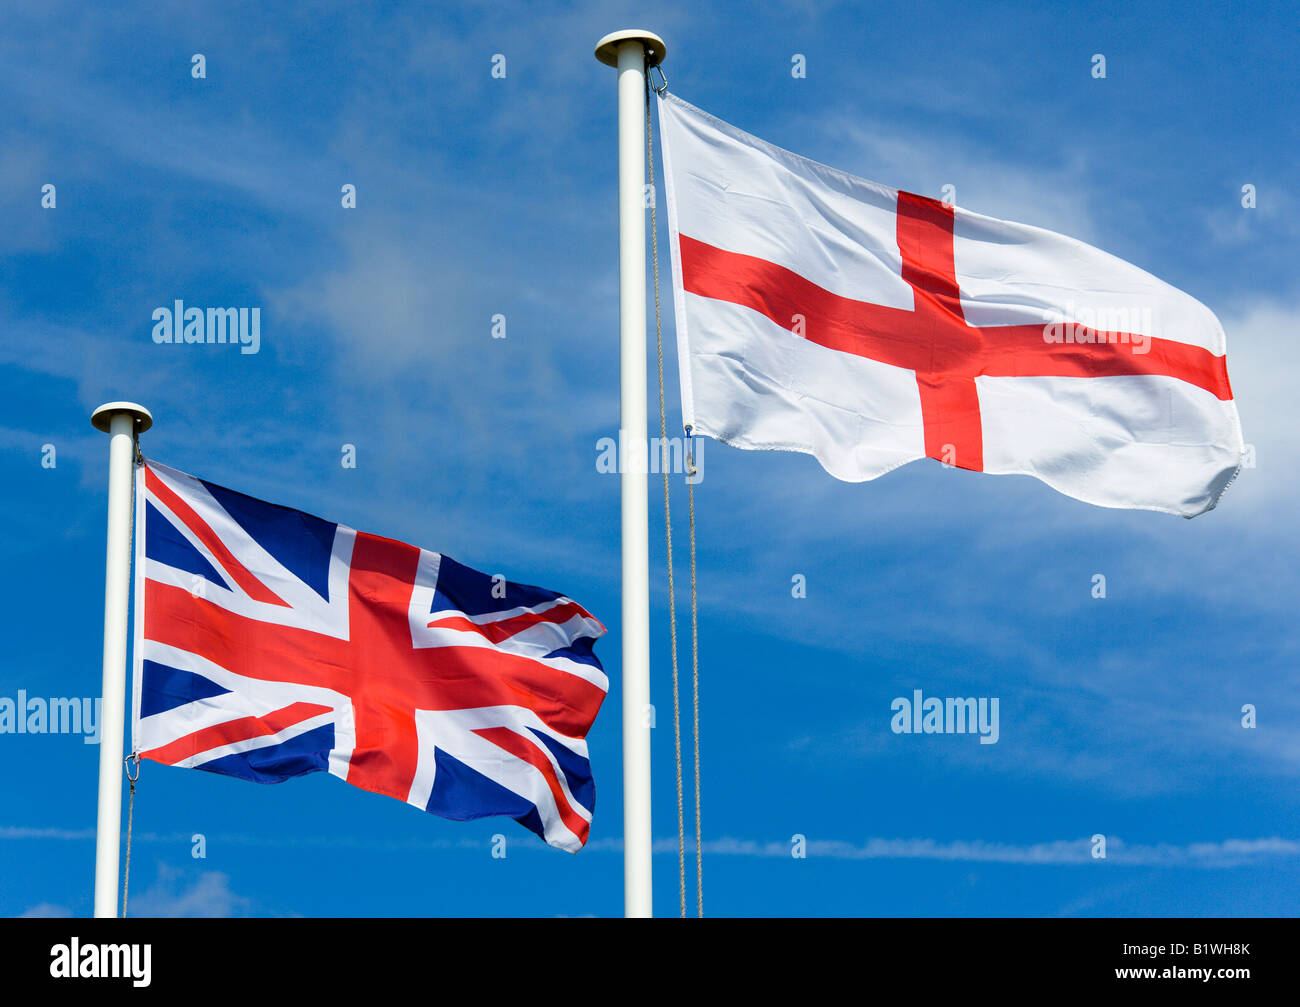 england-west-sussex-littlehampton-union-jack-or-union-flag-and-english-B1WH8K.jpg